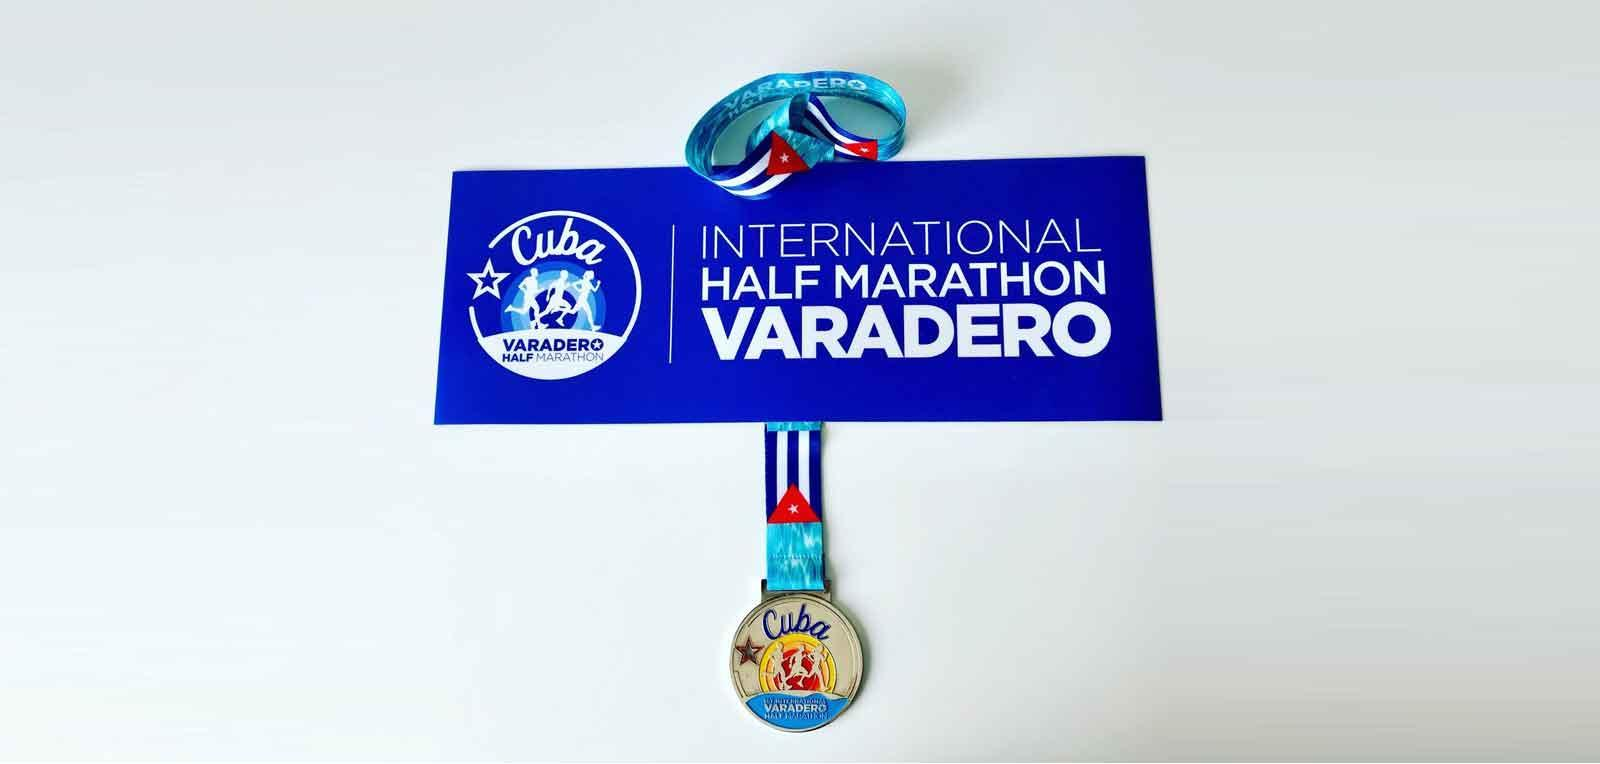 Varadero Half Marathon postponed for 2022